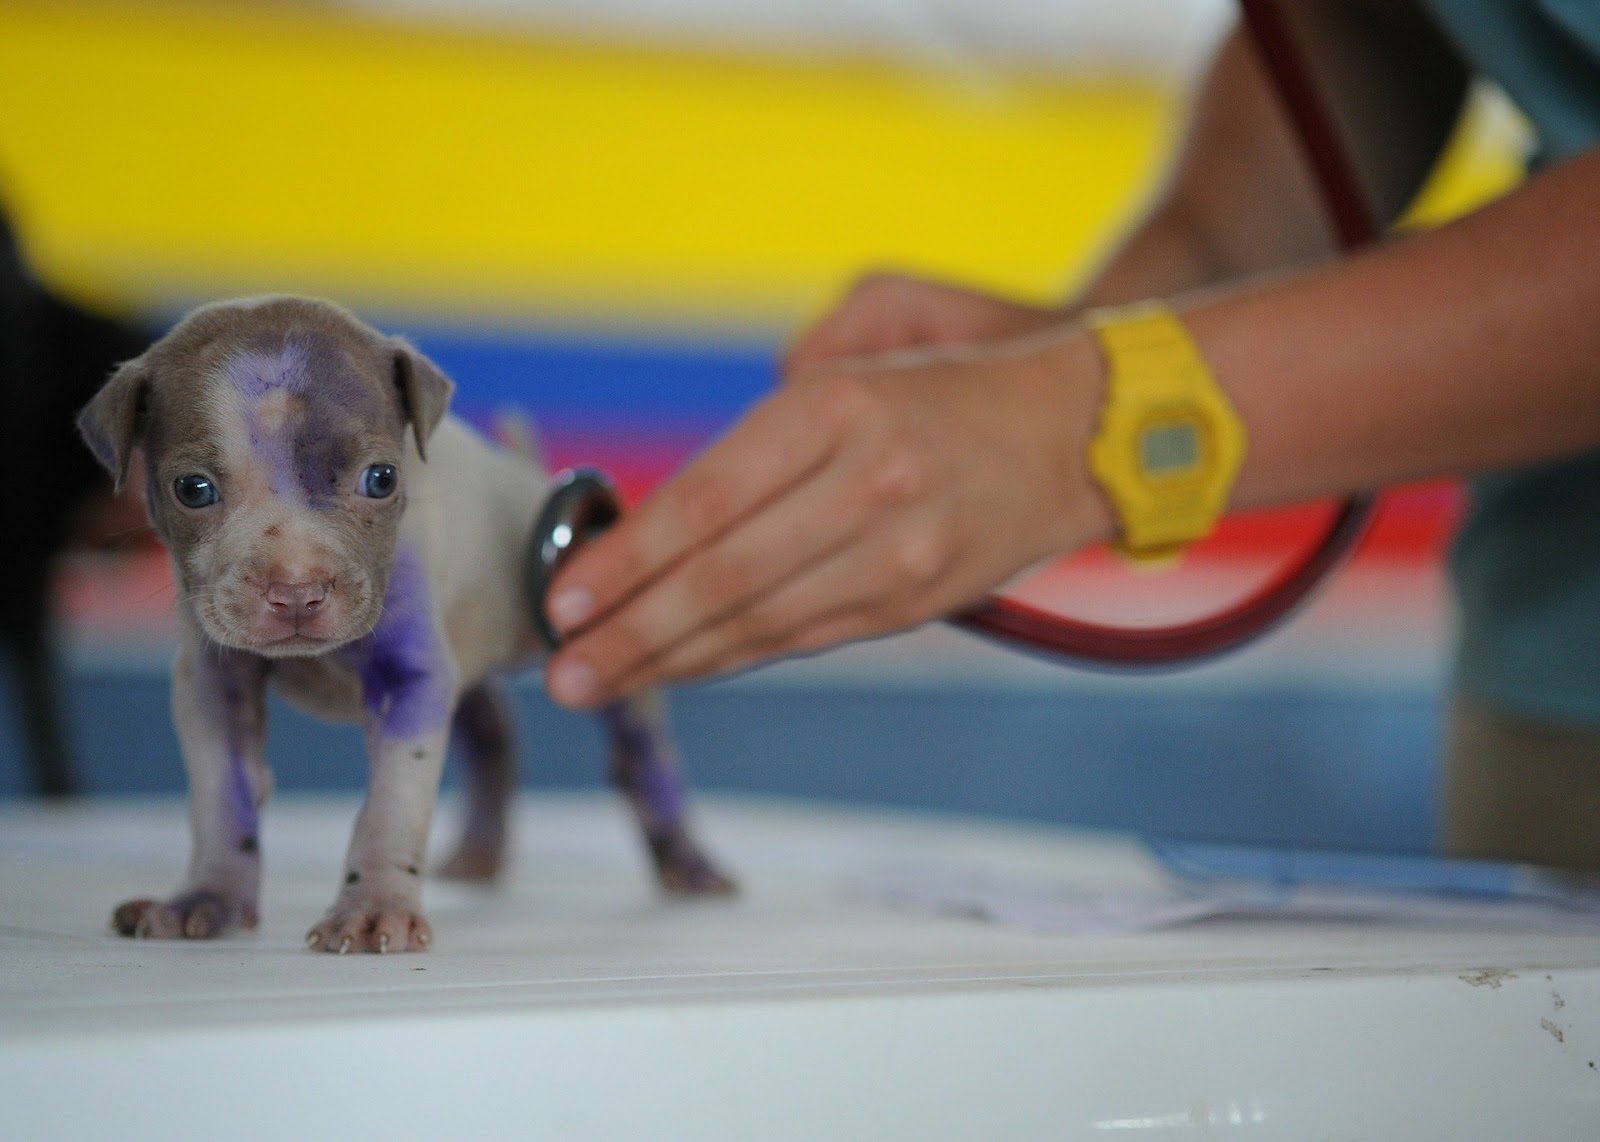 Small puppy being checked out by a veterinarian.